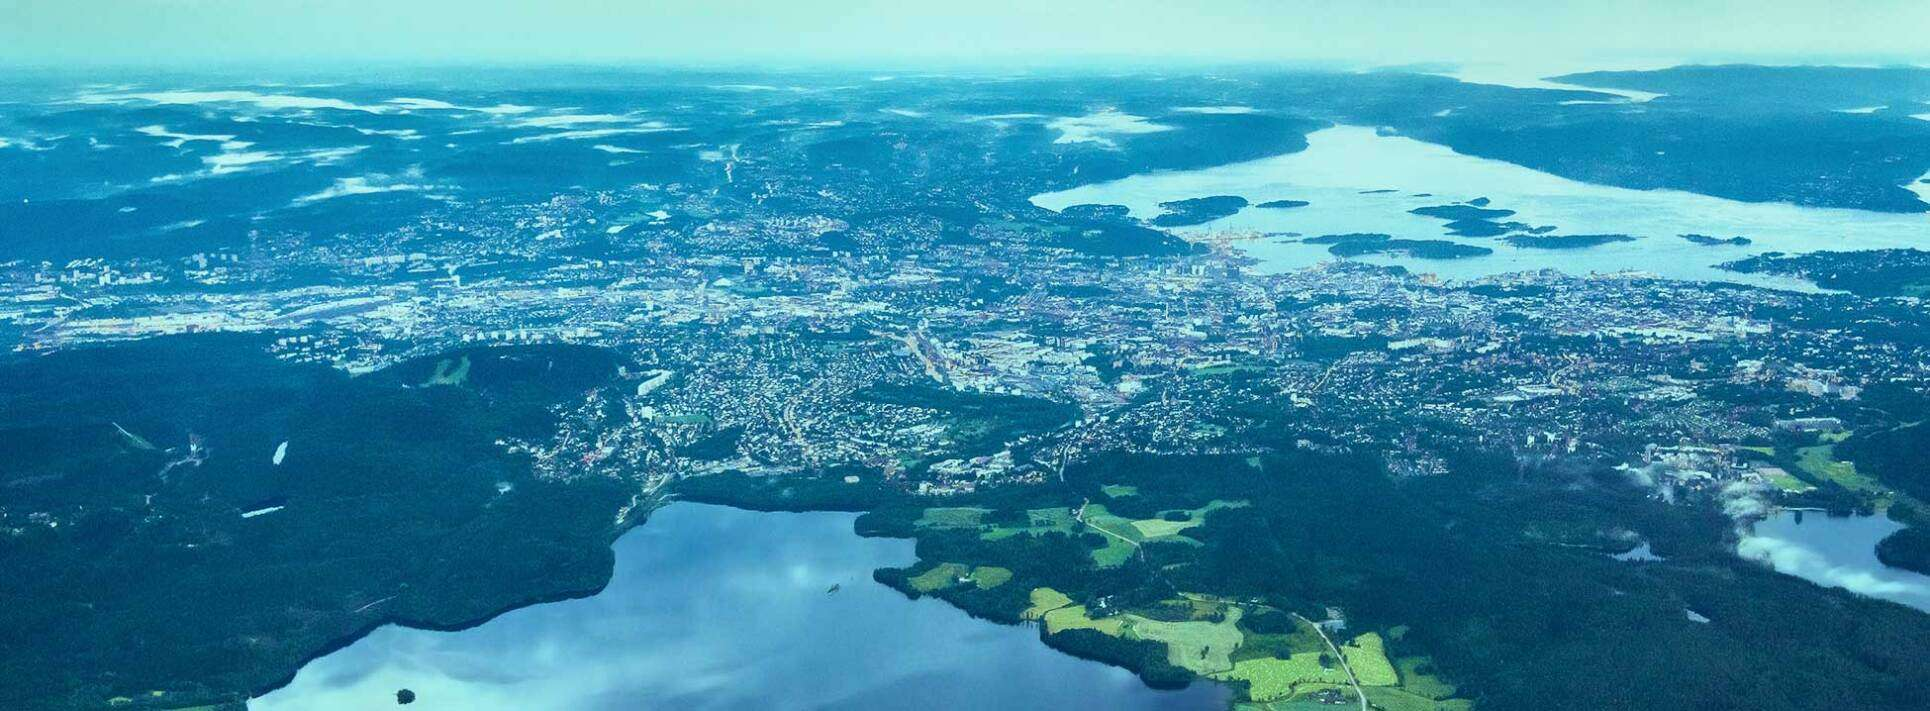 No More Wait Time Surprises at Oslo and Stavanger Airport, thanks to Veovo technology